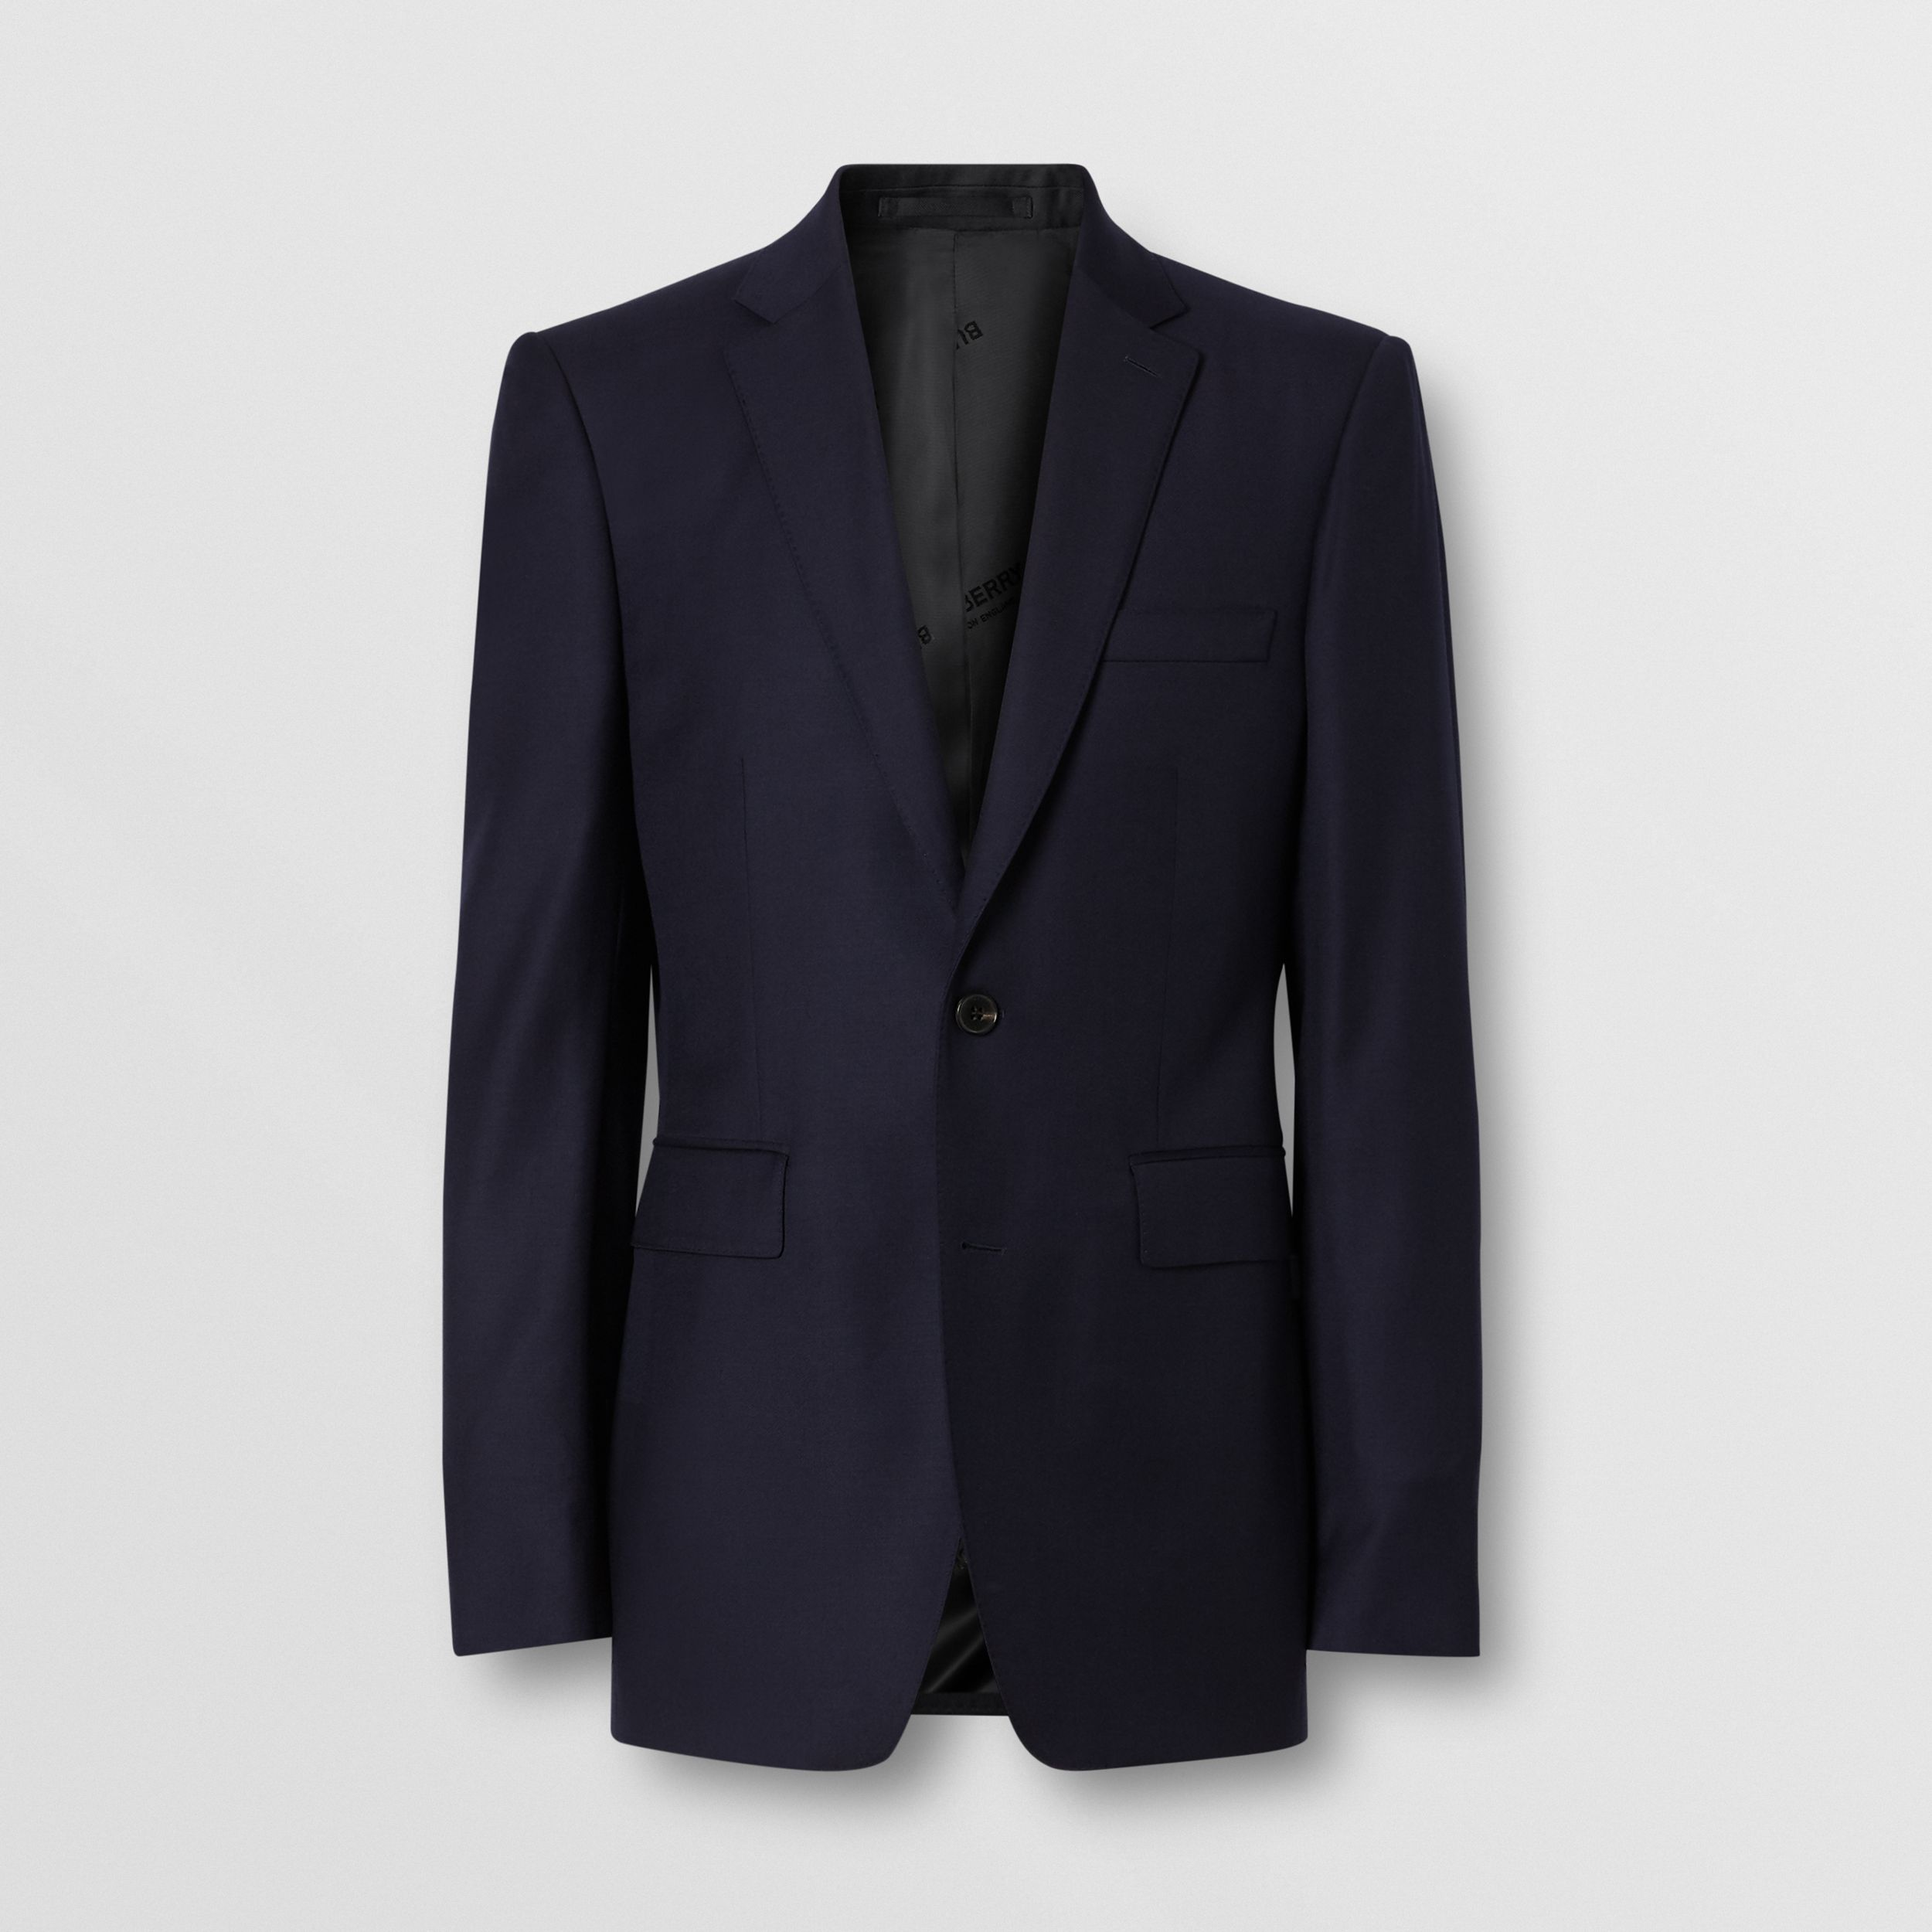 Classic Fit Wool Suit in Navy - Men | Burberry United Kingdom - 4